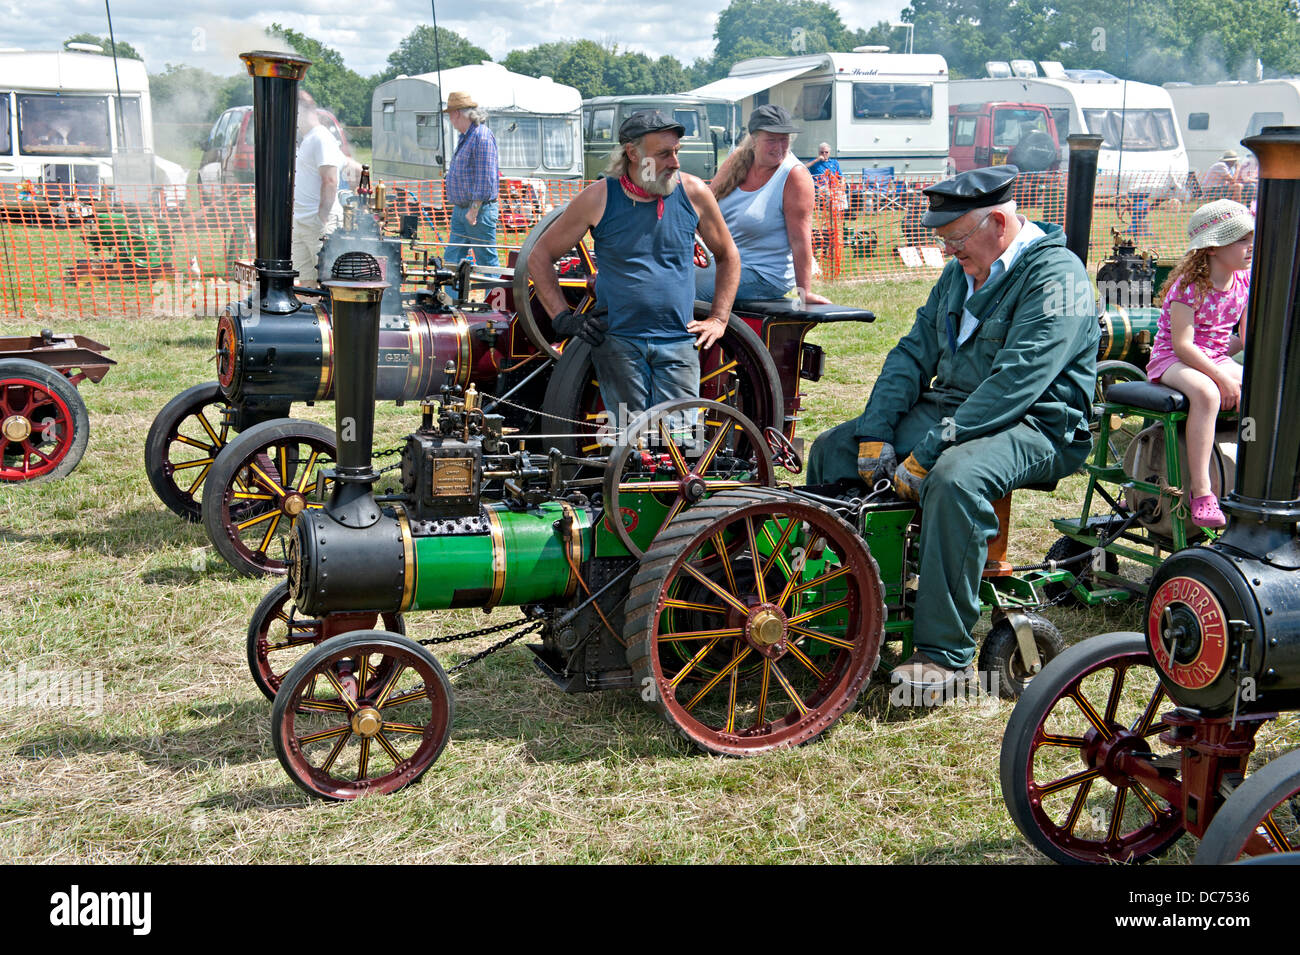 Miniature steam traction engines at a Steam Fair Stock Photo